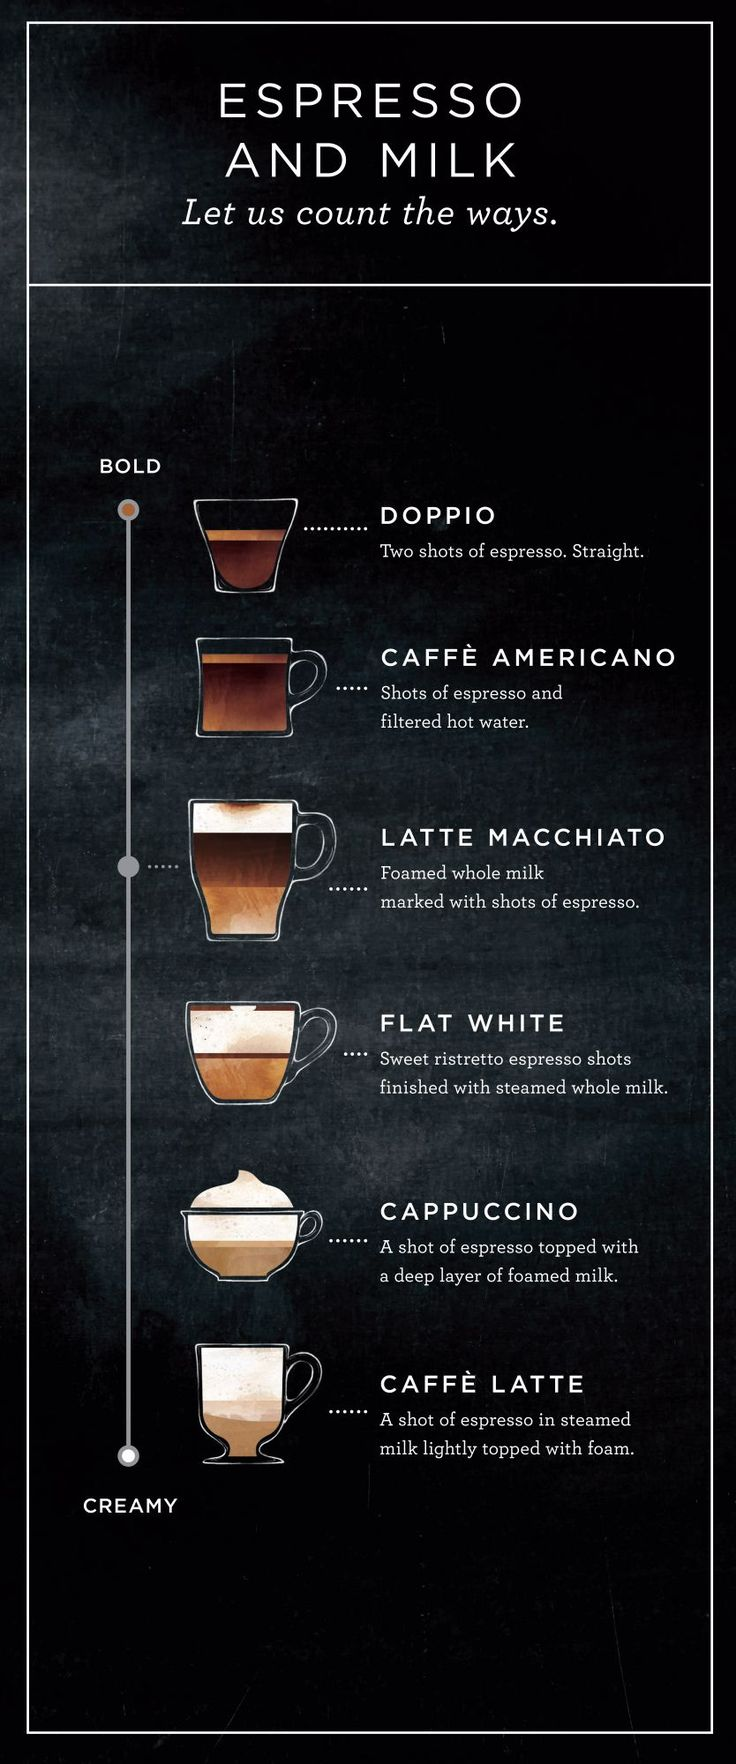 Six boldly different drinks made from the same simple ingredients—espresso and milk. @starbucks  Has mastered this art of perfecting the  ratio of espresso and milk , no matter your preferences  coffee has a taste best suited to your lifestyle .